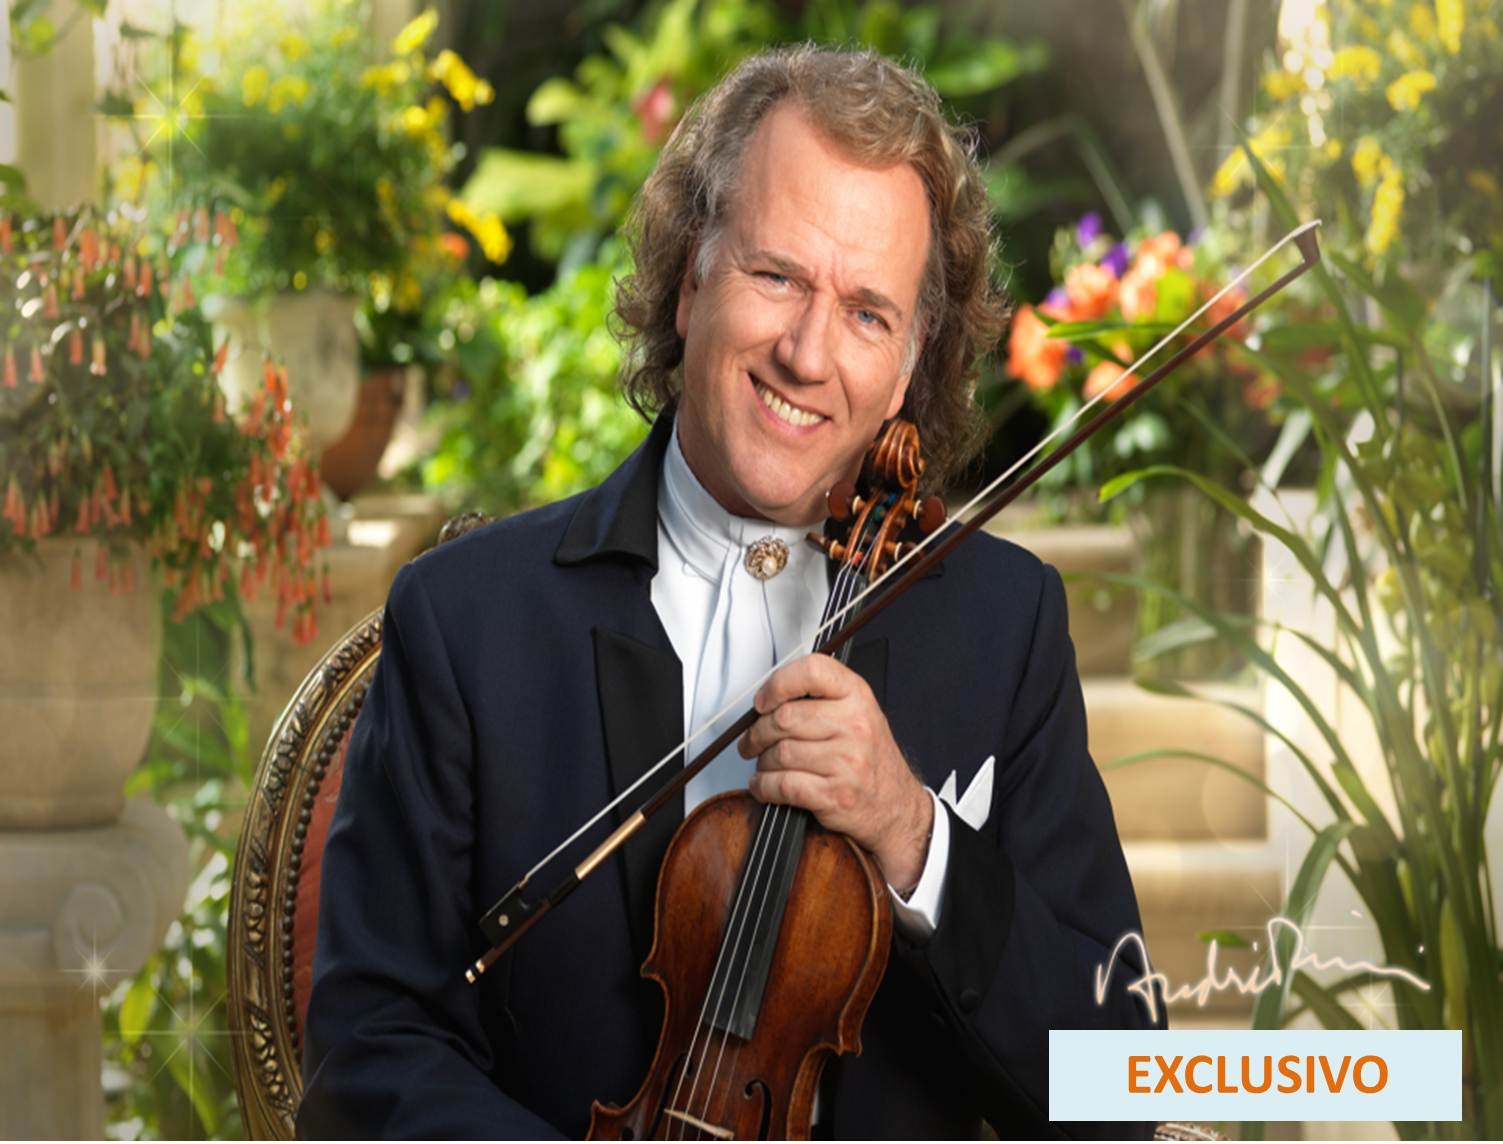 ANDRE RIEU (NEW)